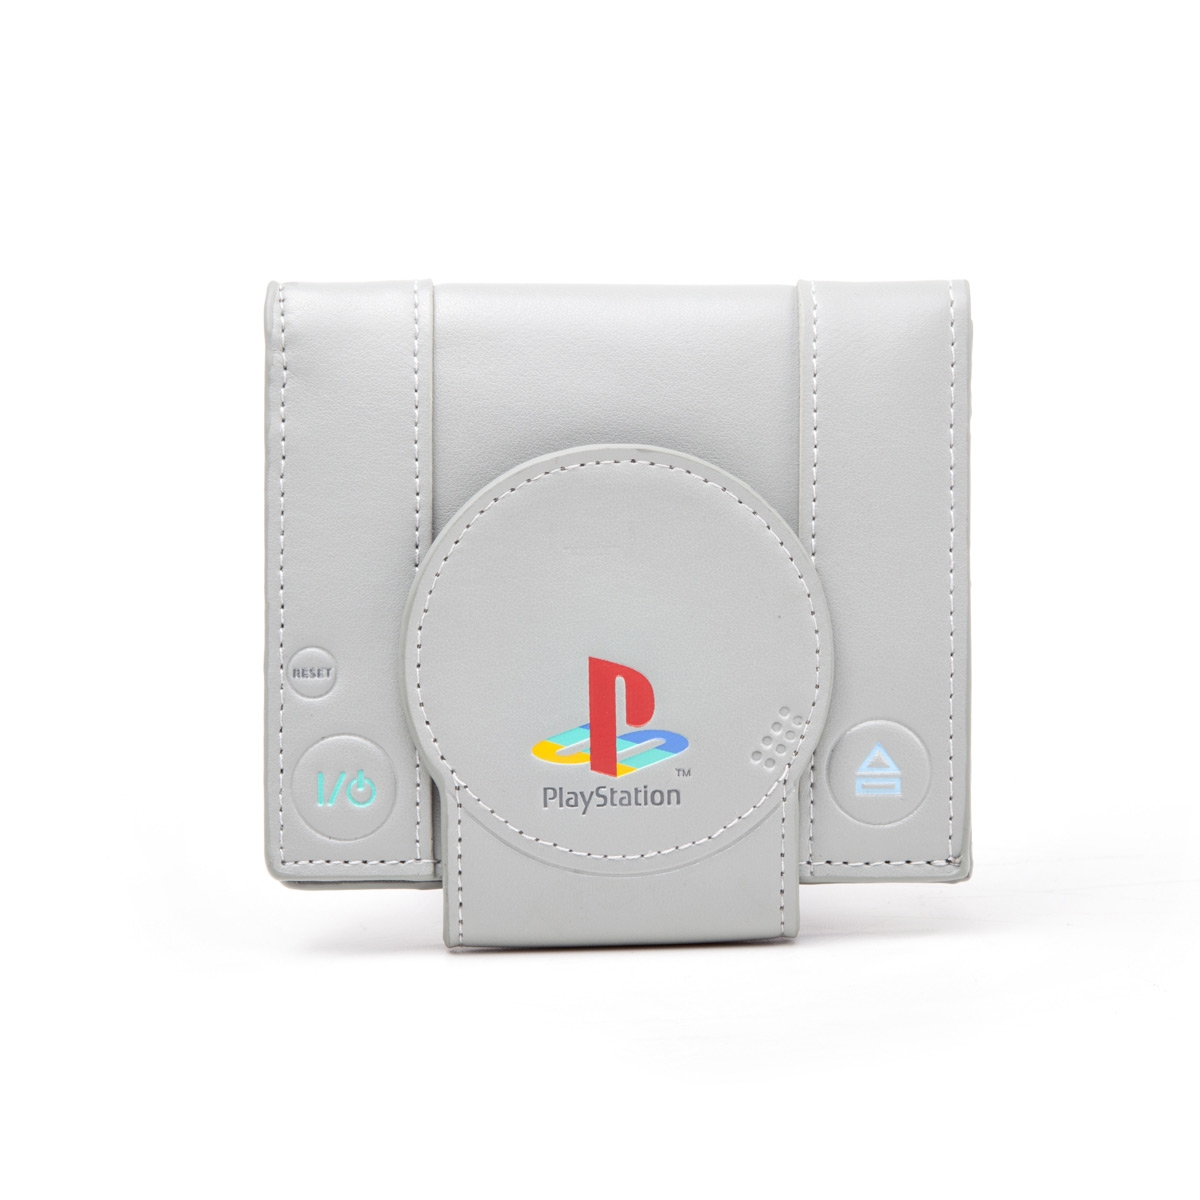 Playstation Console Bifold Wallet